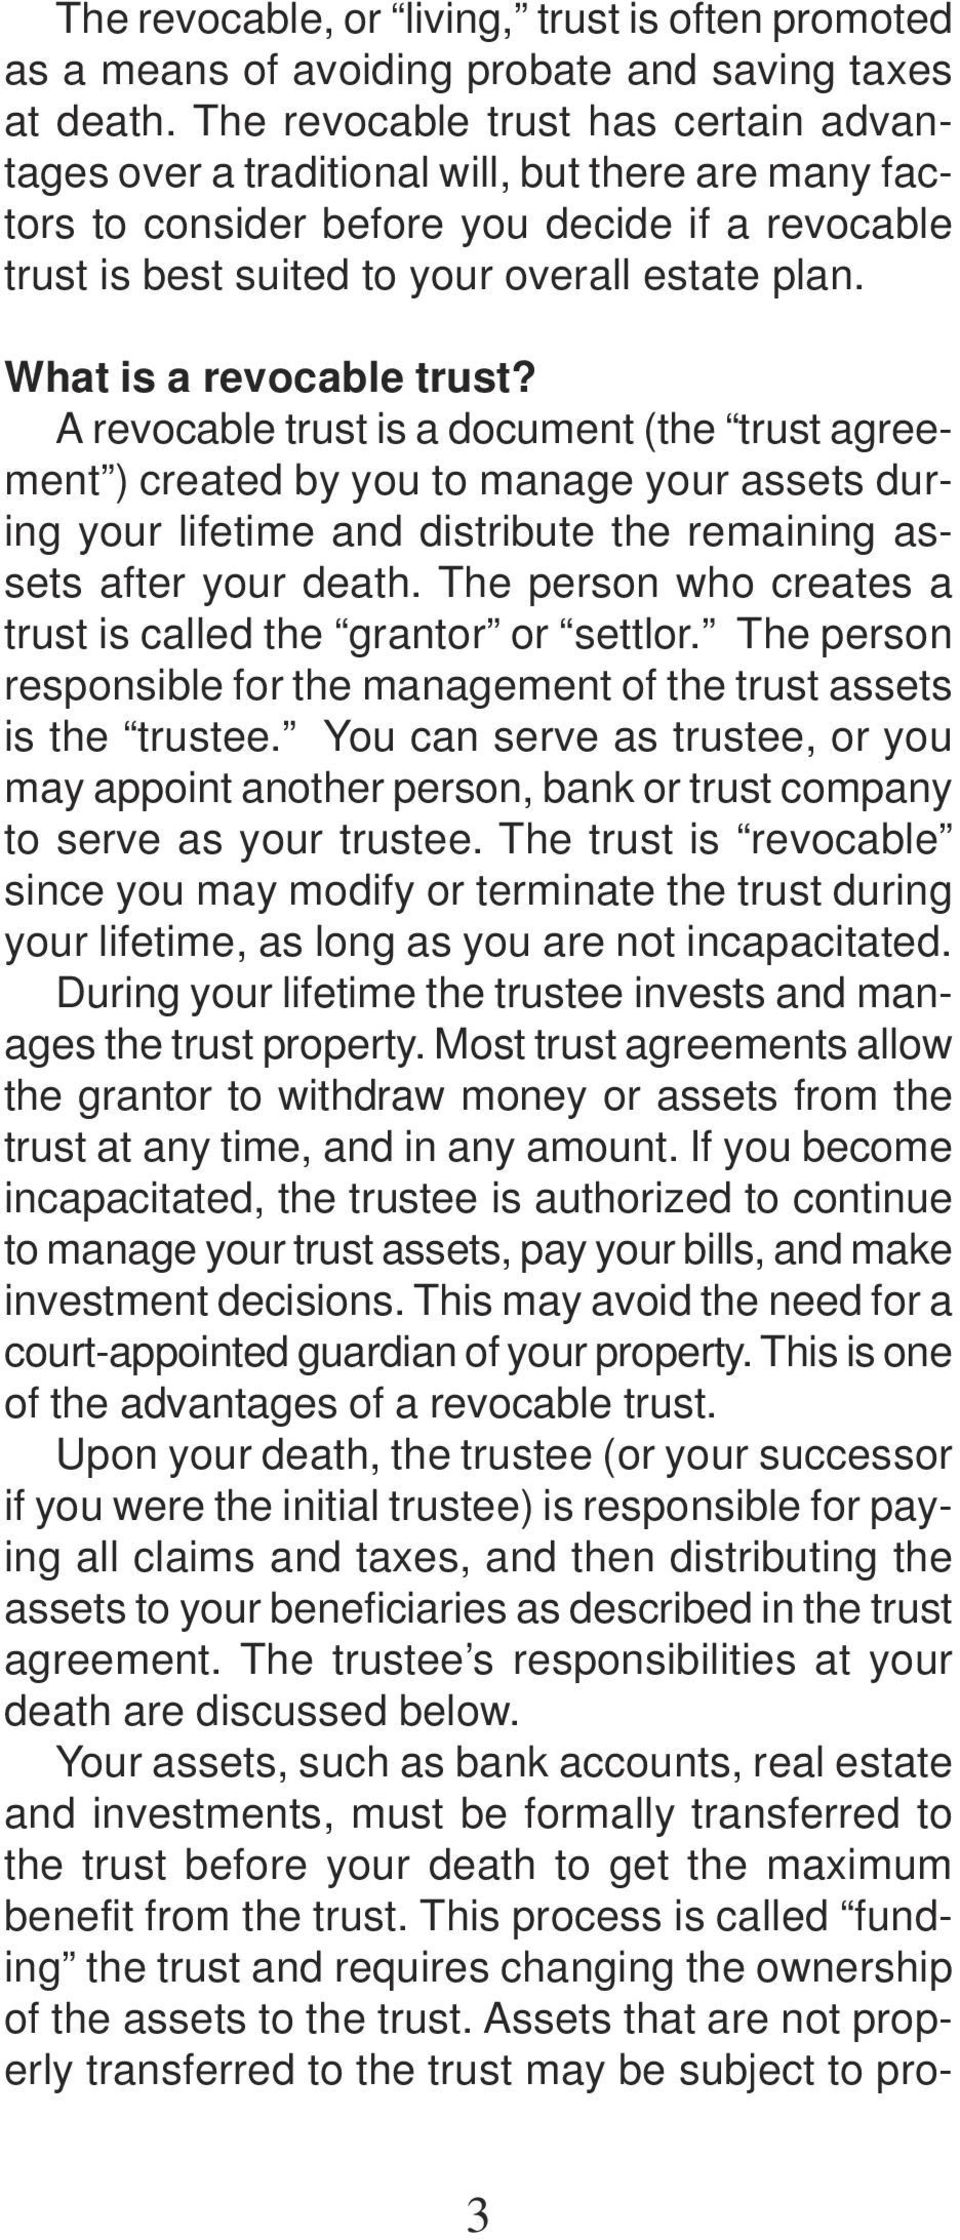 What is a revocable trust? A revocable trust is a document (the trust agreement ) created by you to manage your assets during your lifetime and distribute the remaining assets after your death.